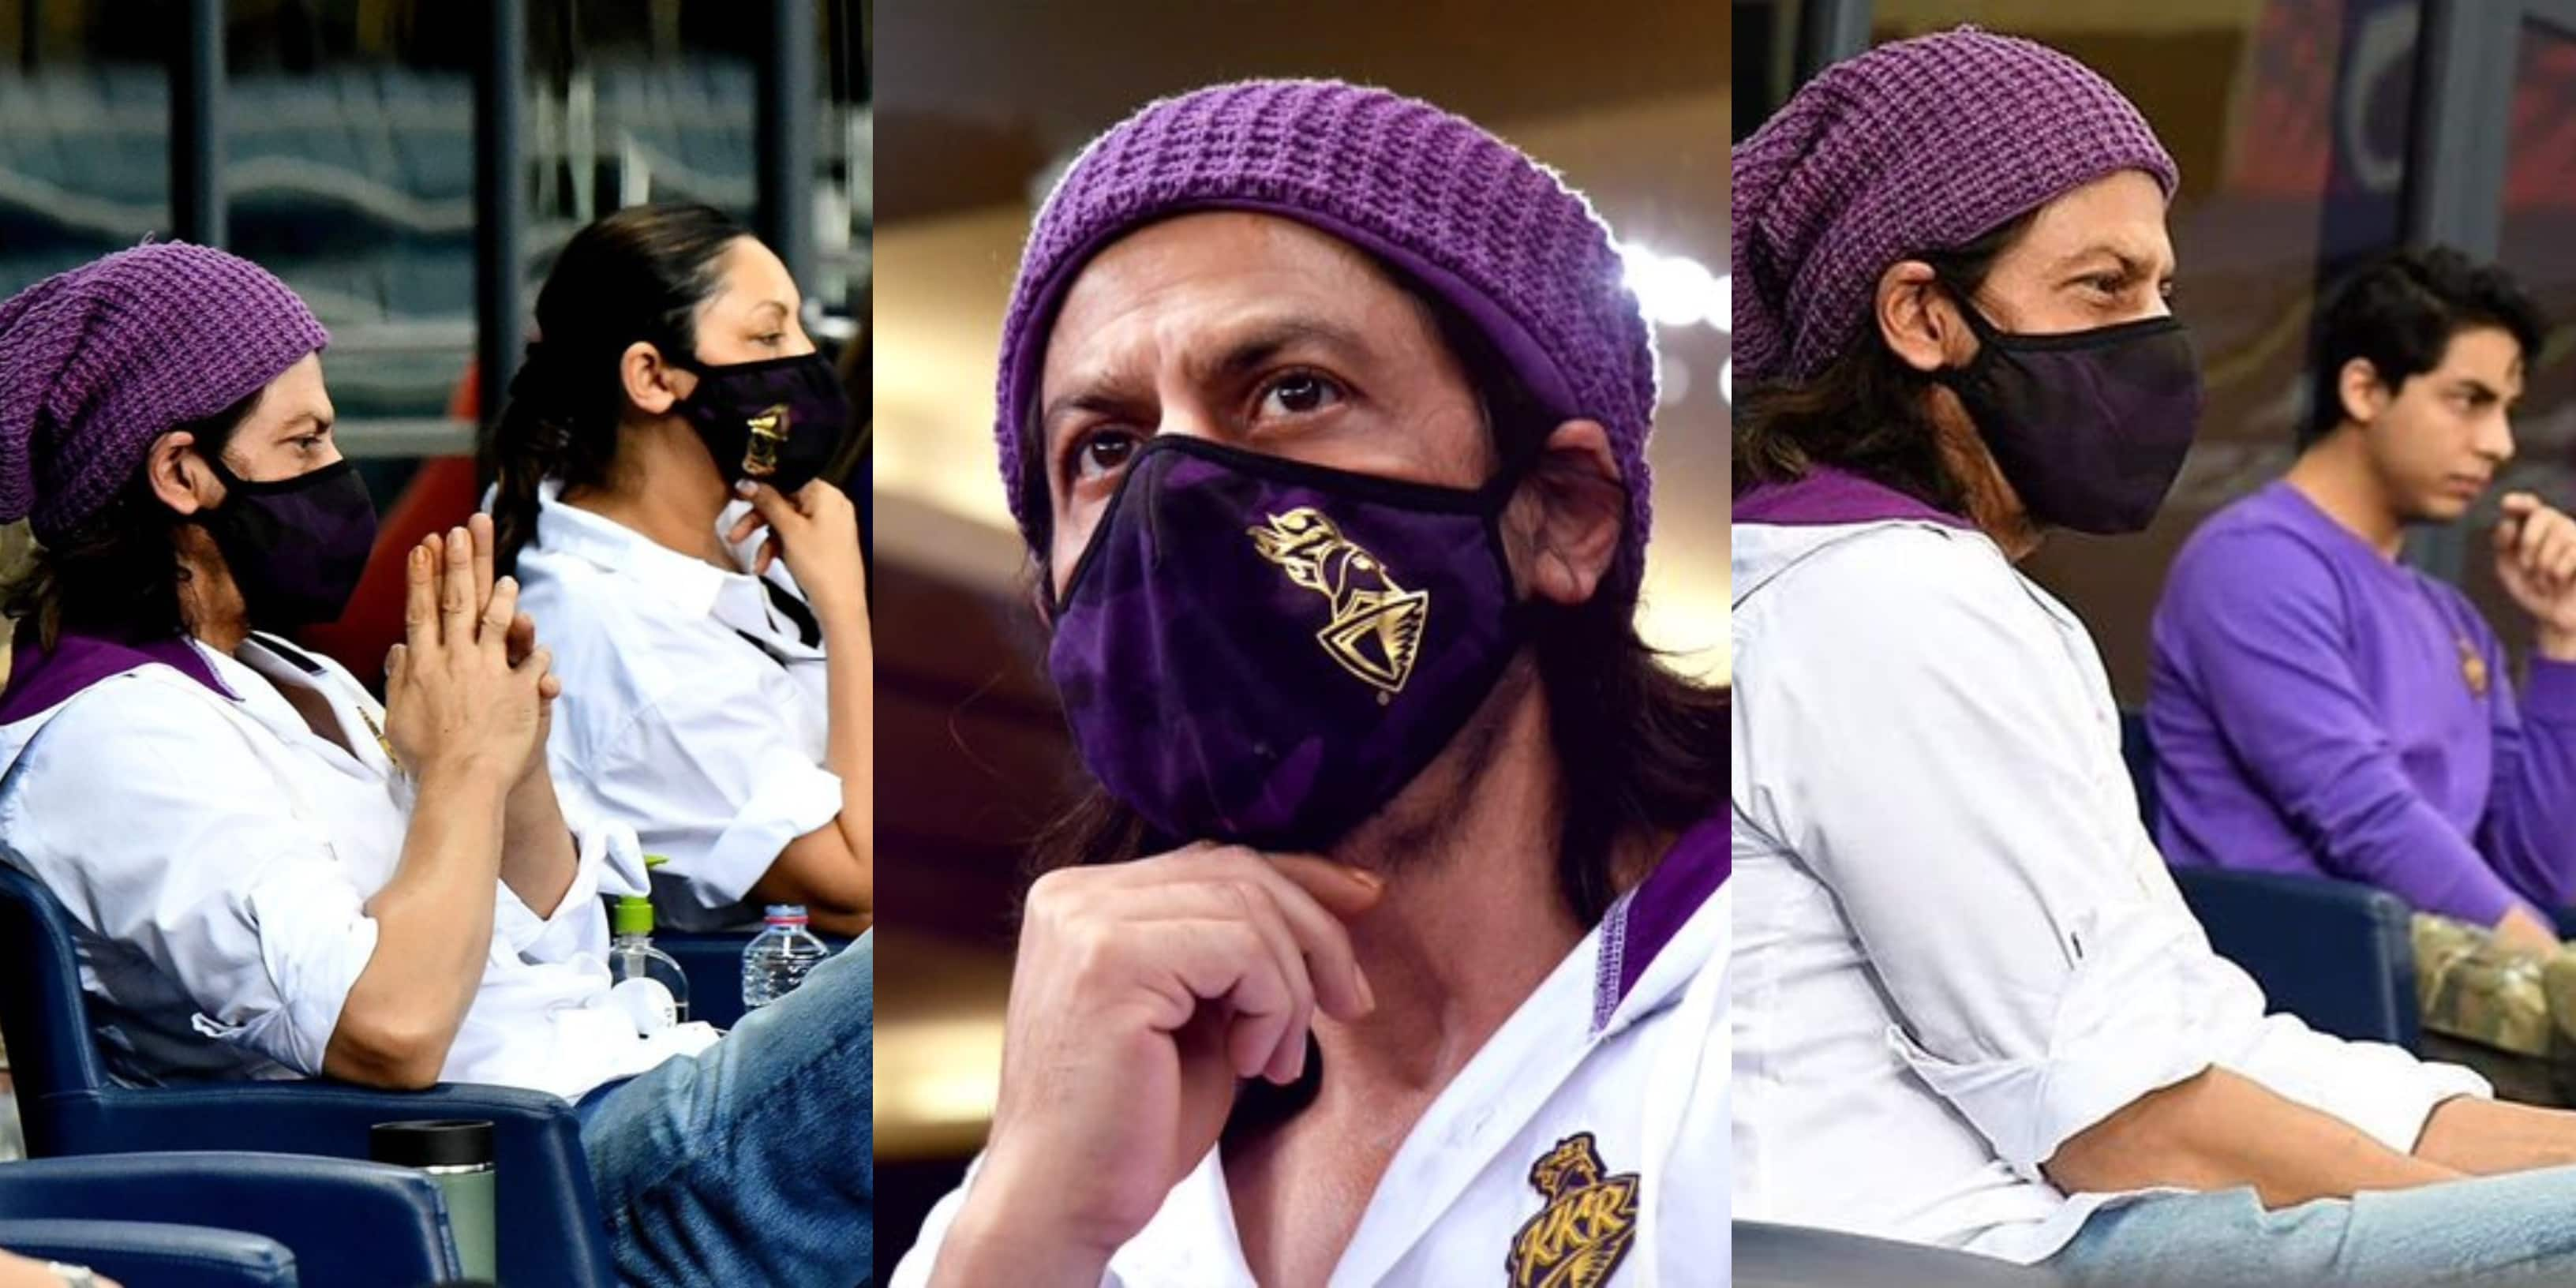 Shah Rukh Khan Supports KKR From The Stands In Dubai With Wife Gauri And Son Aryan, See Pictures...